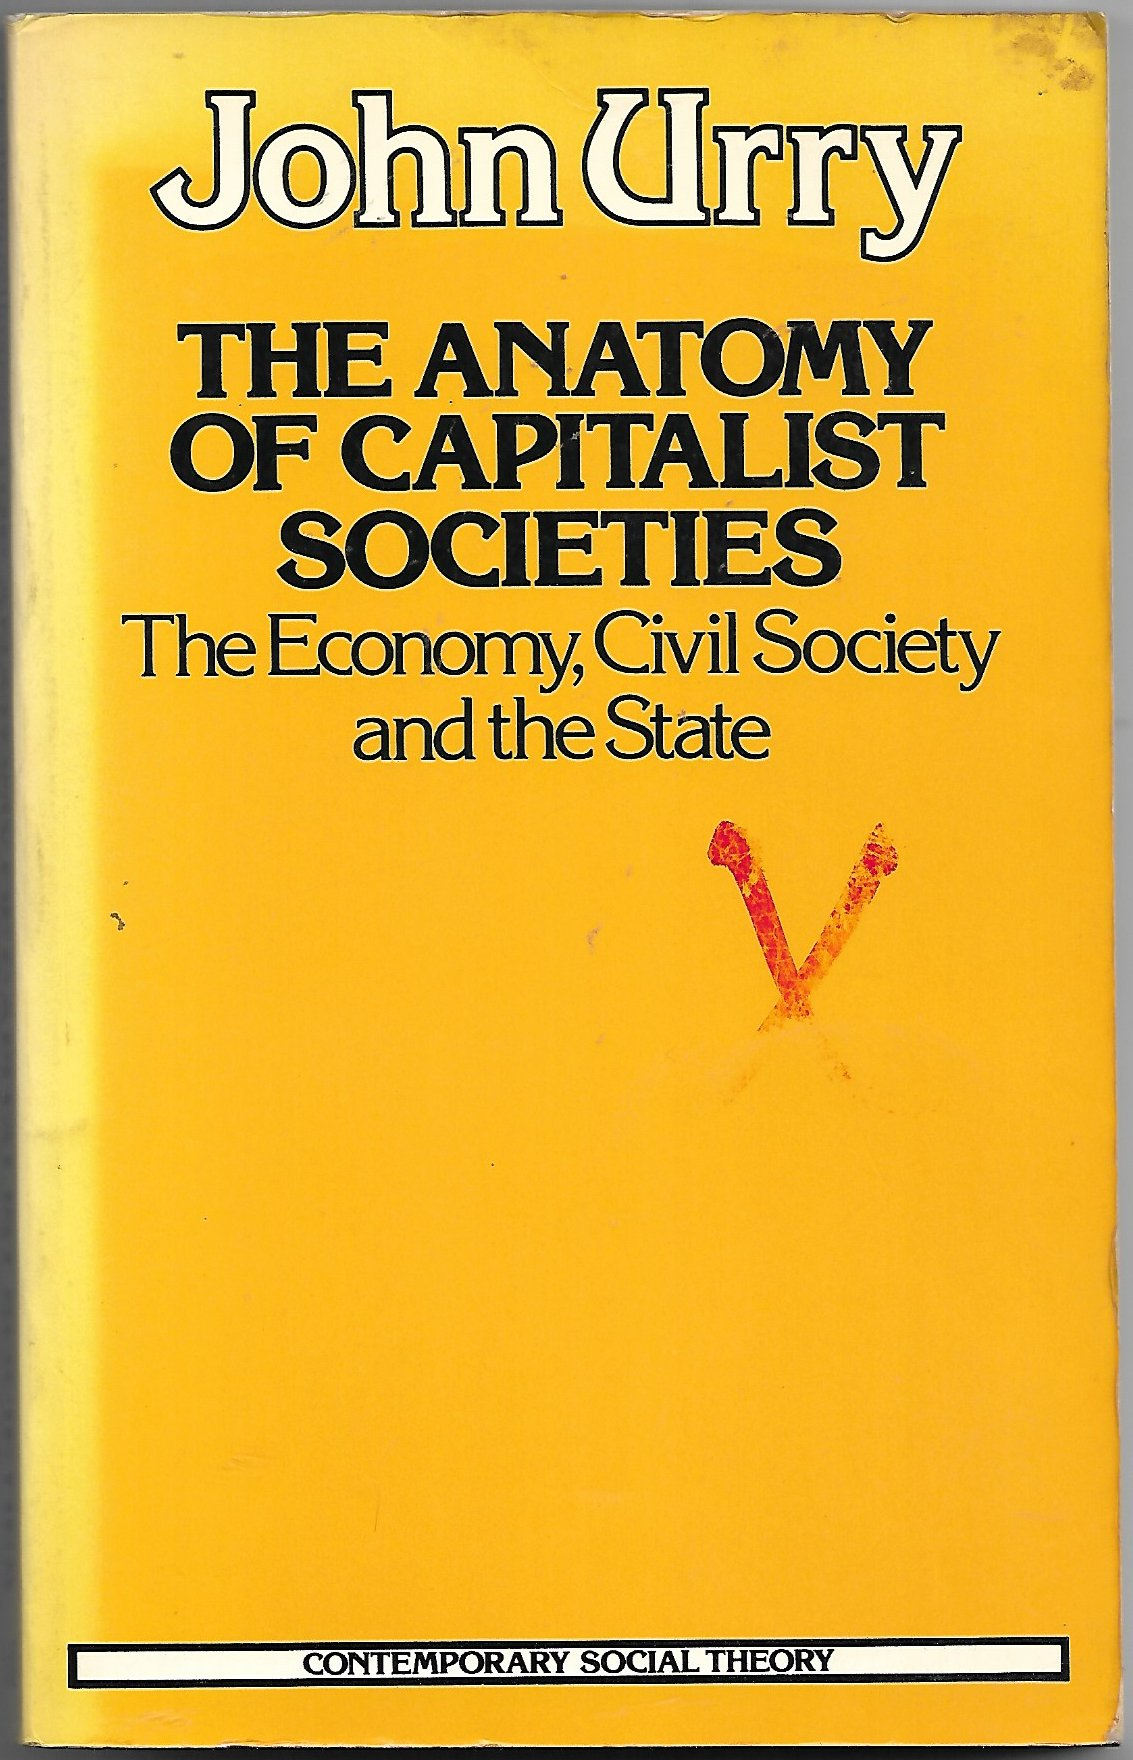 Anatomy Of Capitalist Societies The Economy Civil Society And The